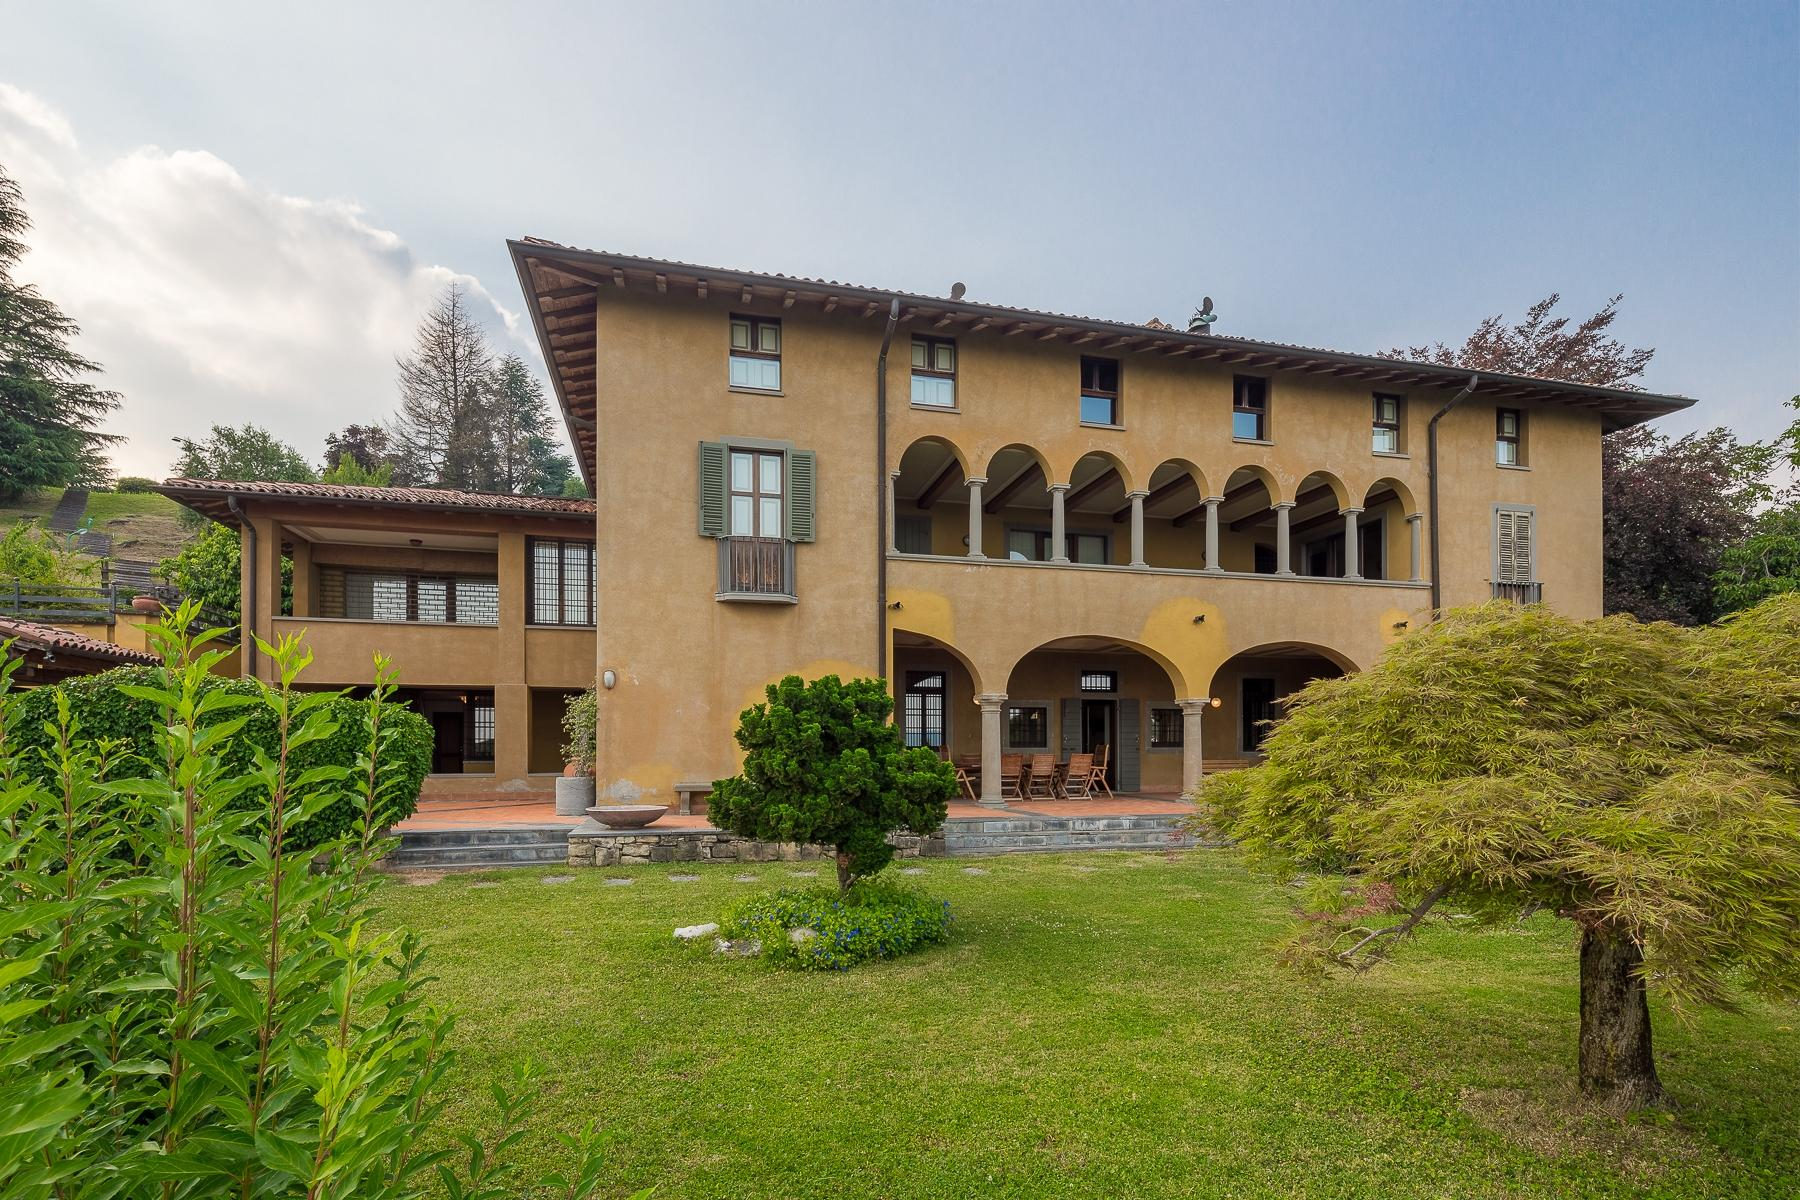 Wonderful property in the Bergamo hills - 2